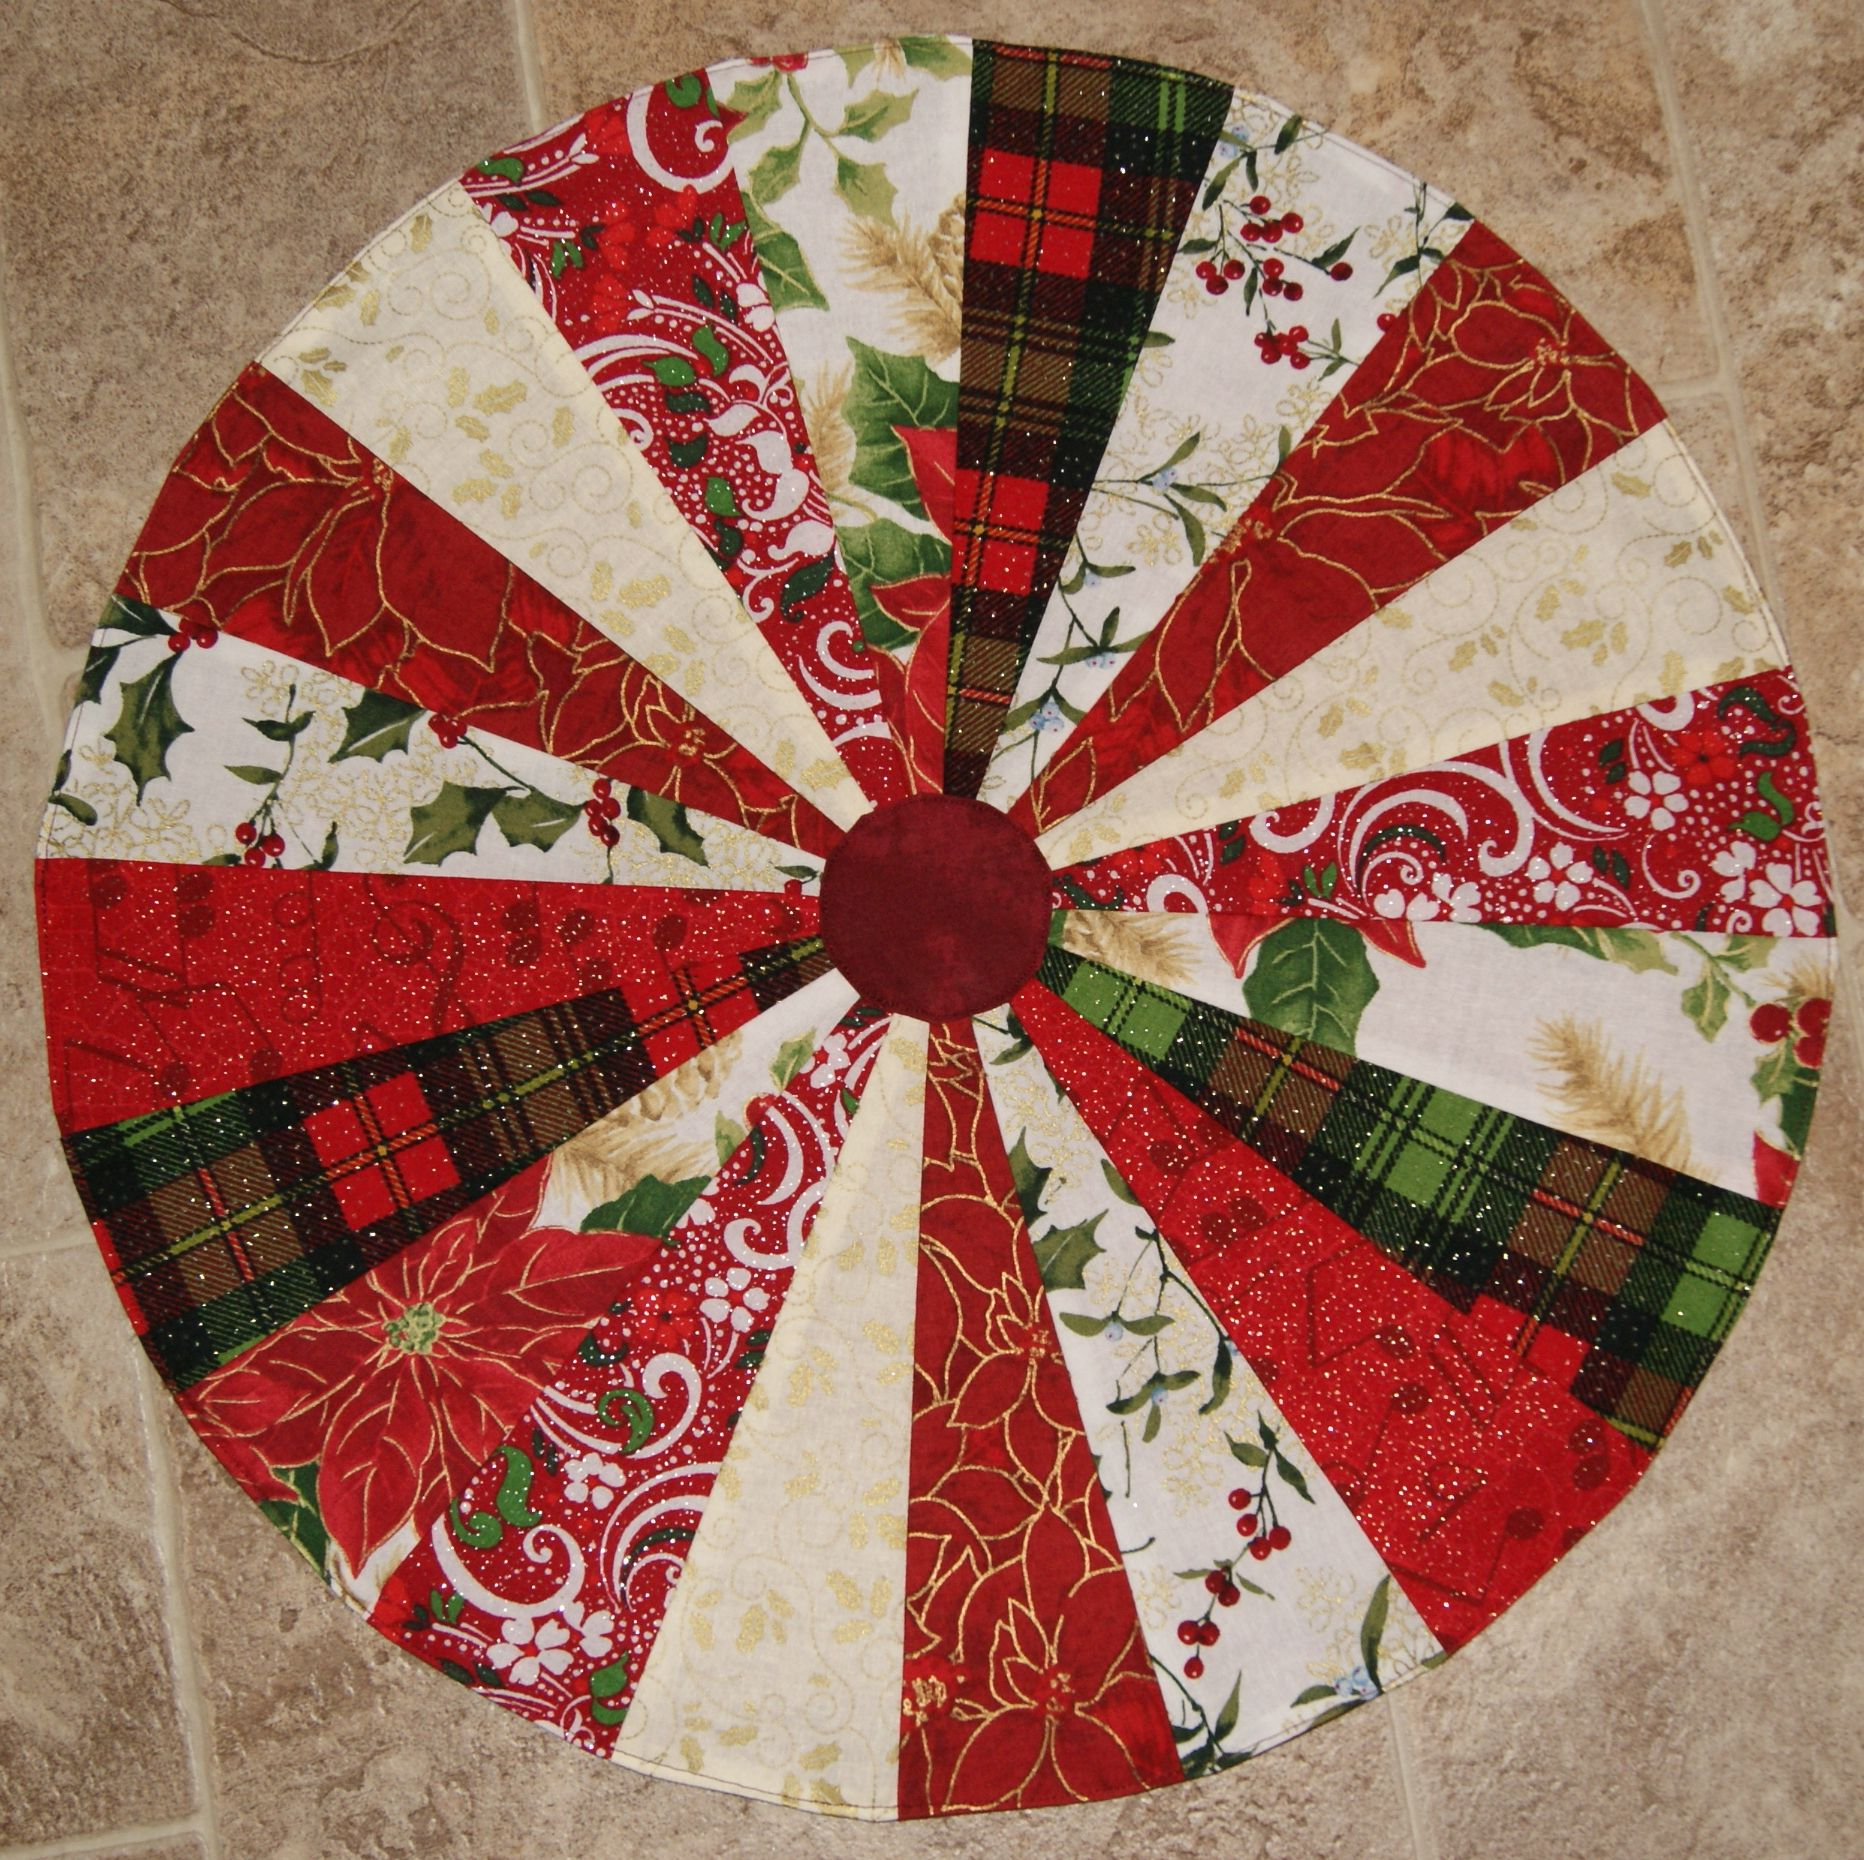 Missouri star quilt company table topper quilts quilts for Round table runner quilt pattern